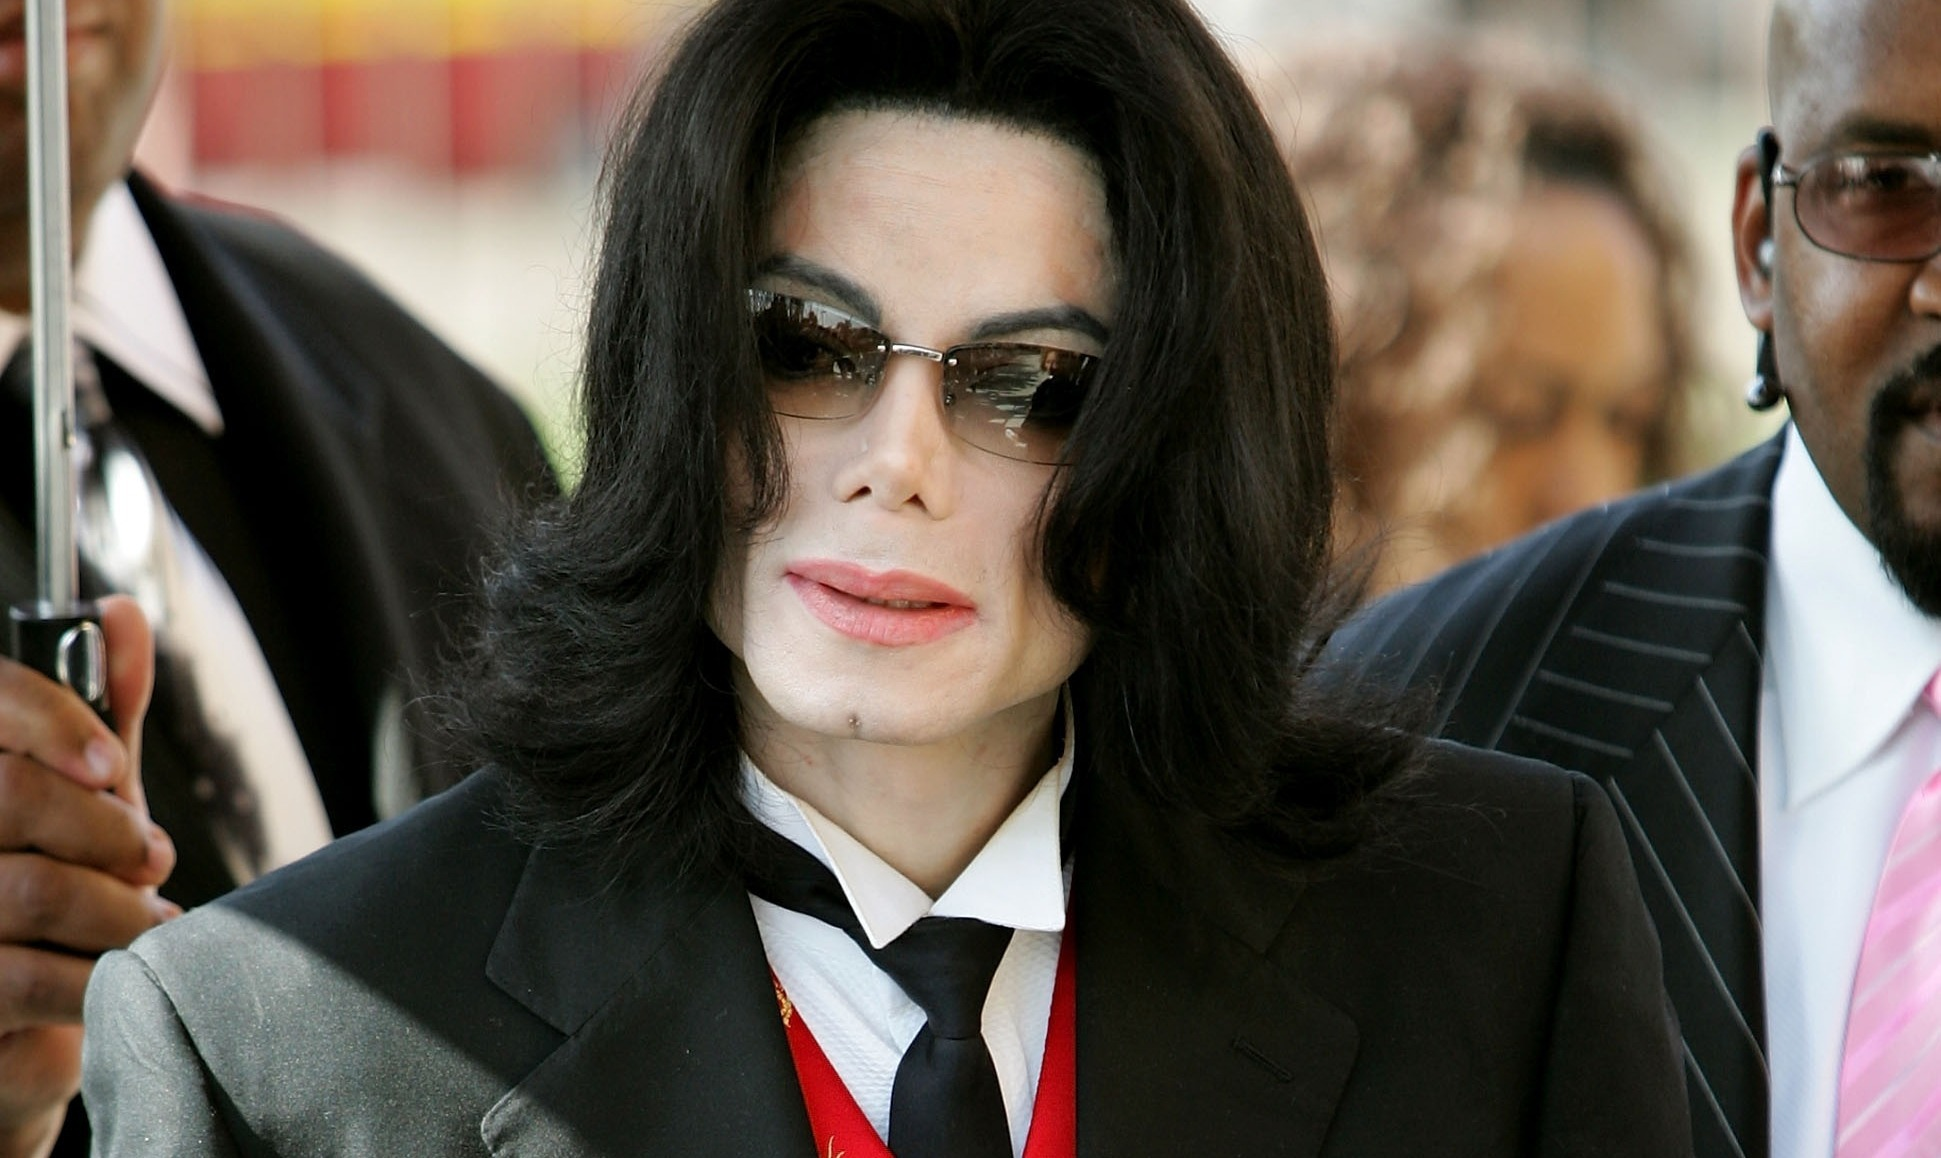 Michael Jackson accusé d'actes pédophiles: plainte contre HBO avant la diffusion du documentaire